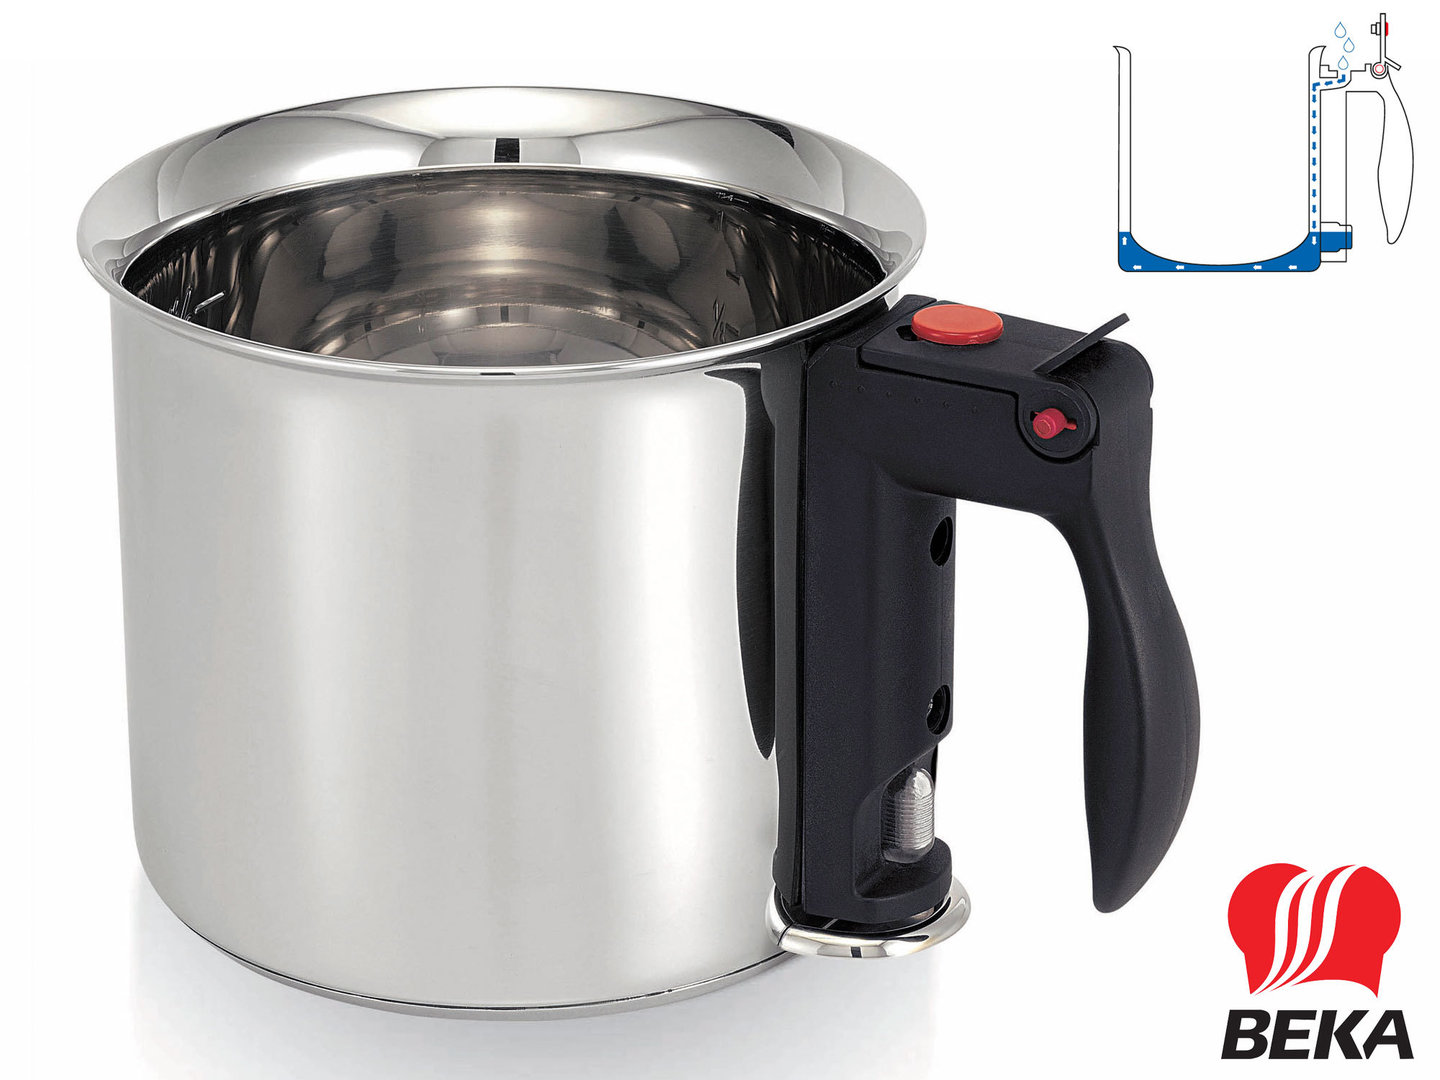 BEKA double-walled milk pot BAIN MARIE 1,7 L water bath pot